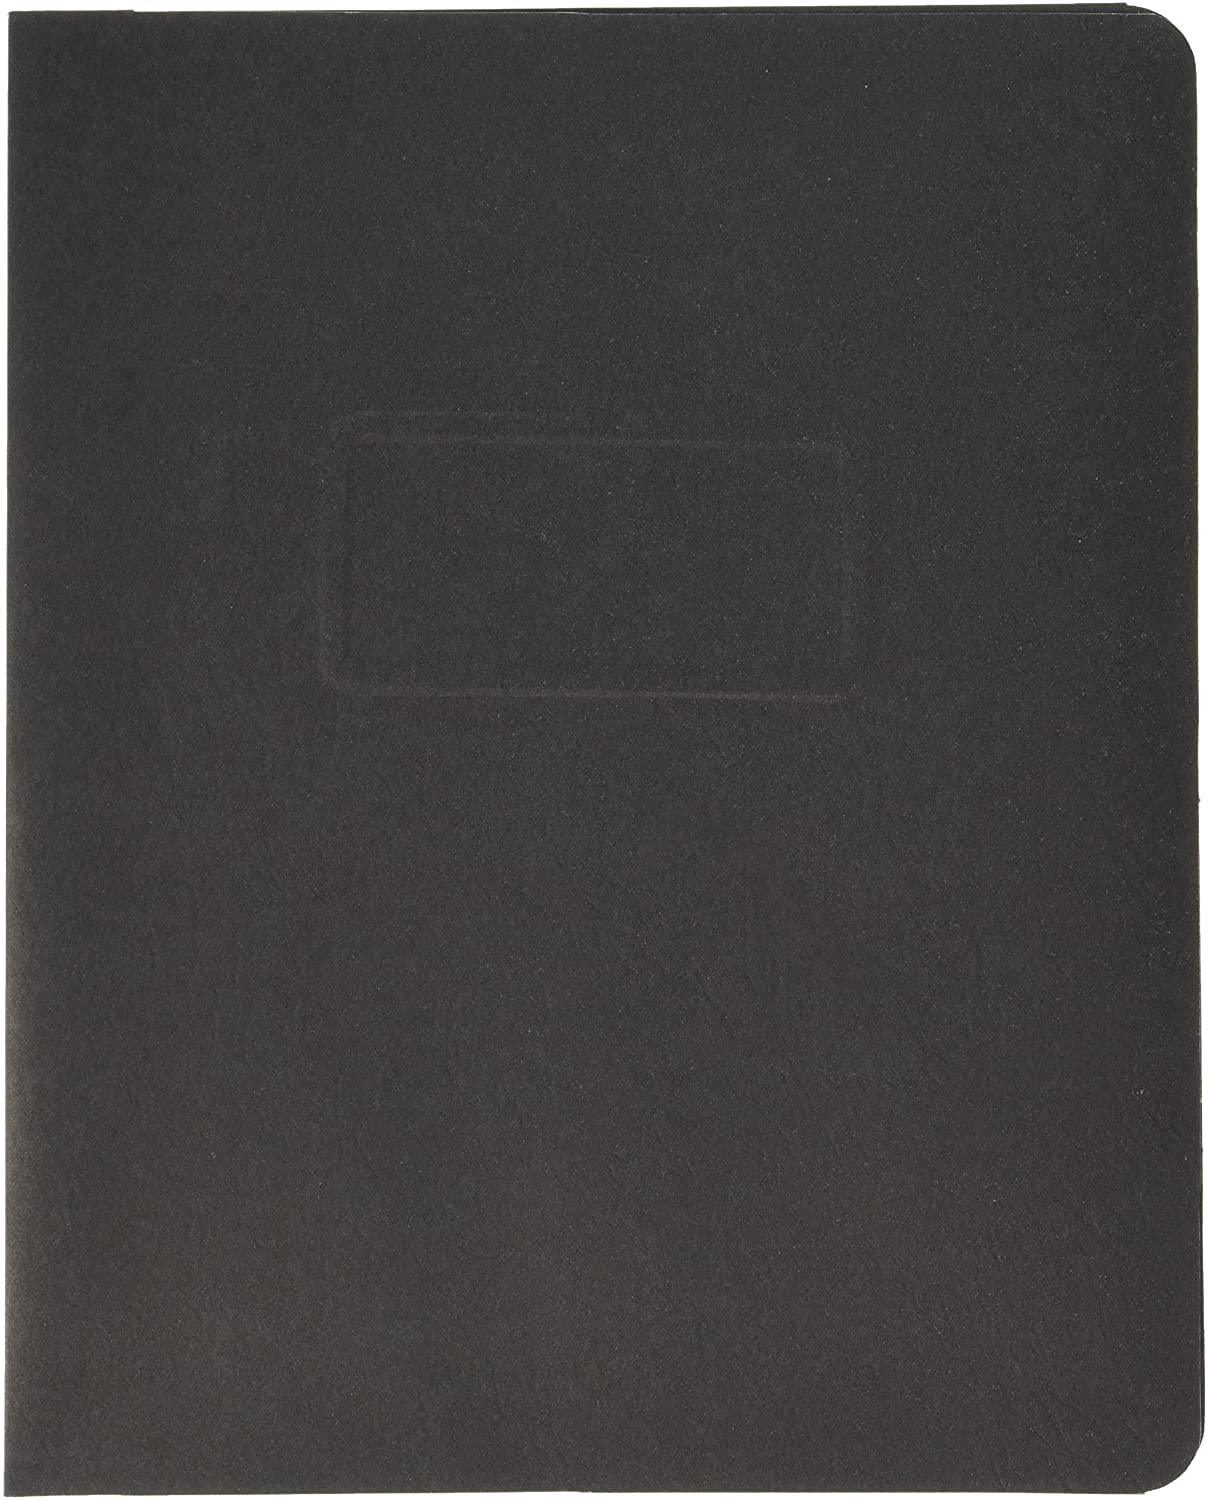 Oxford 2-Hole Prong Report Covers, Black, Letter Size, 25 per Box, (5730105)